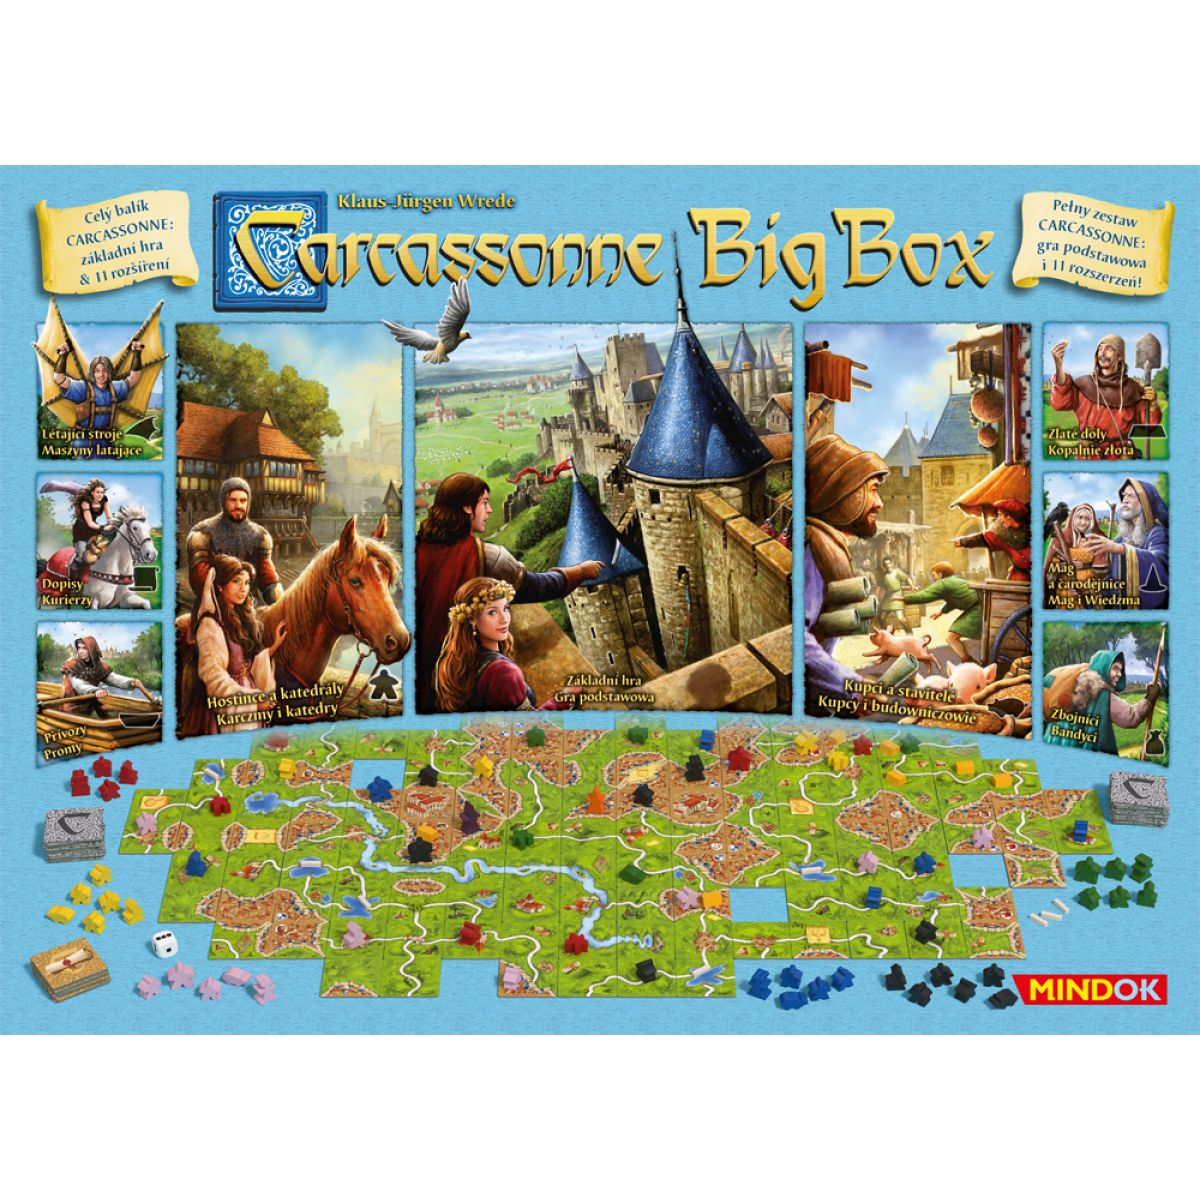 Mindok Carcassonne: Big Box 2017